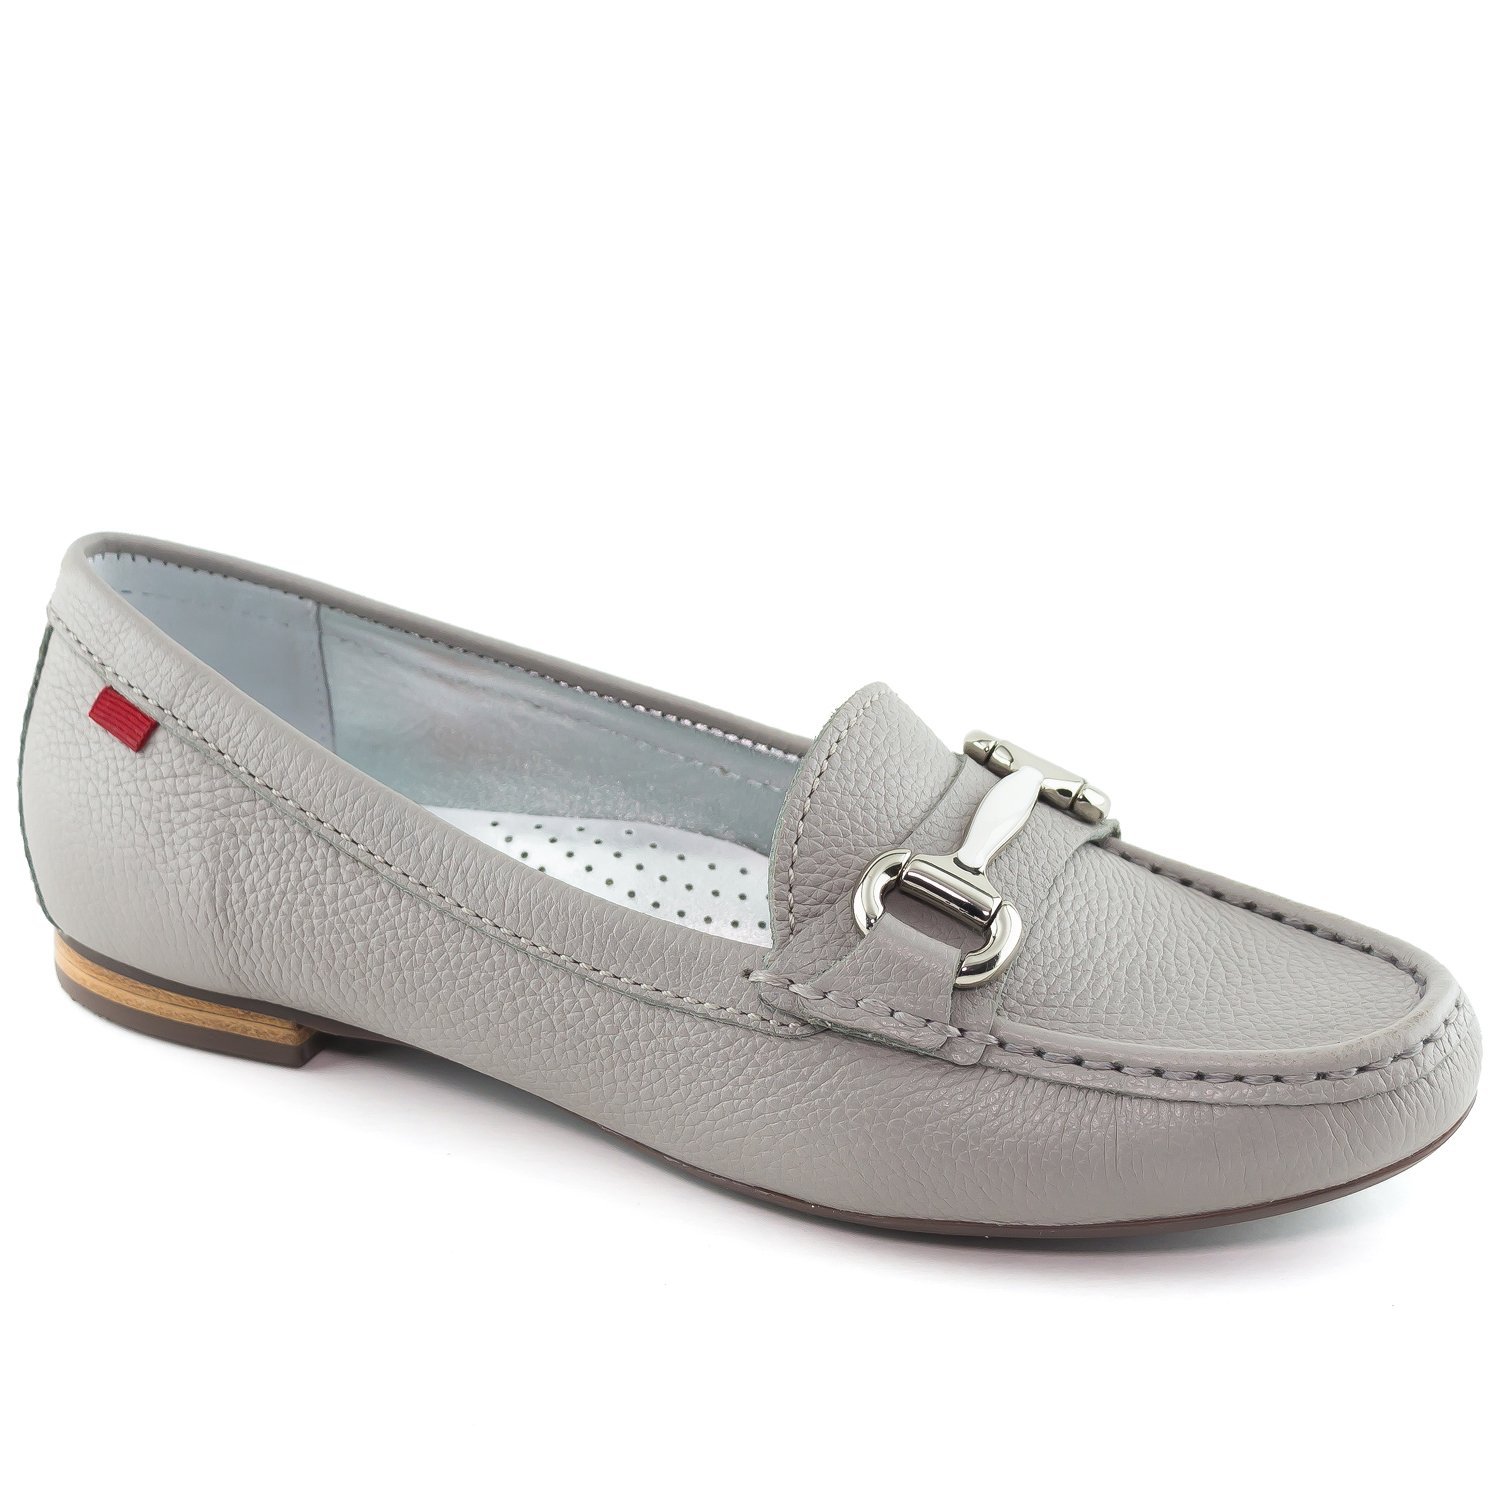 Women's Genuine Leather Made in Brazil Grand Street Ash Grainy Buckle Loafer 7